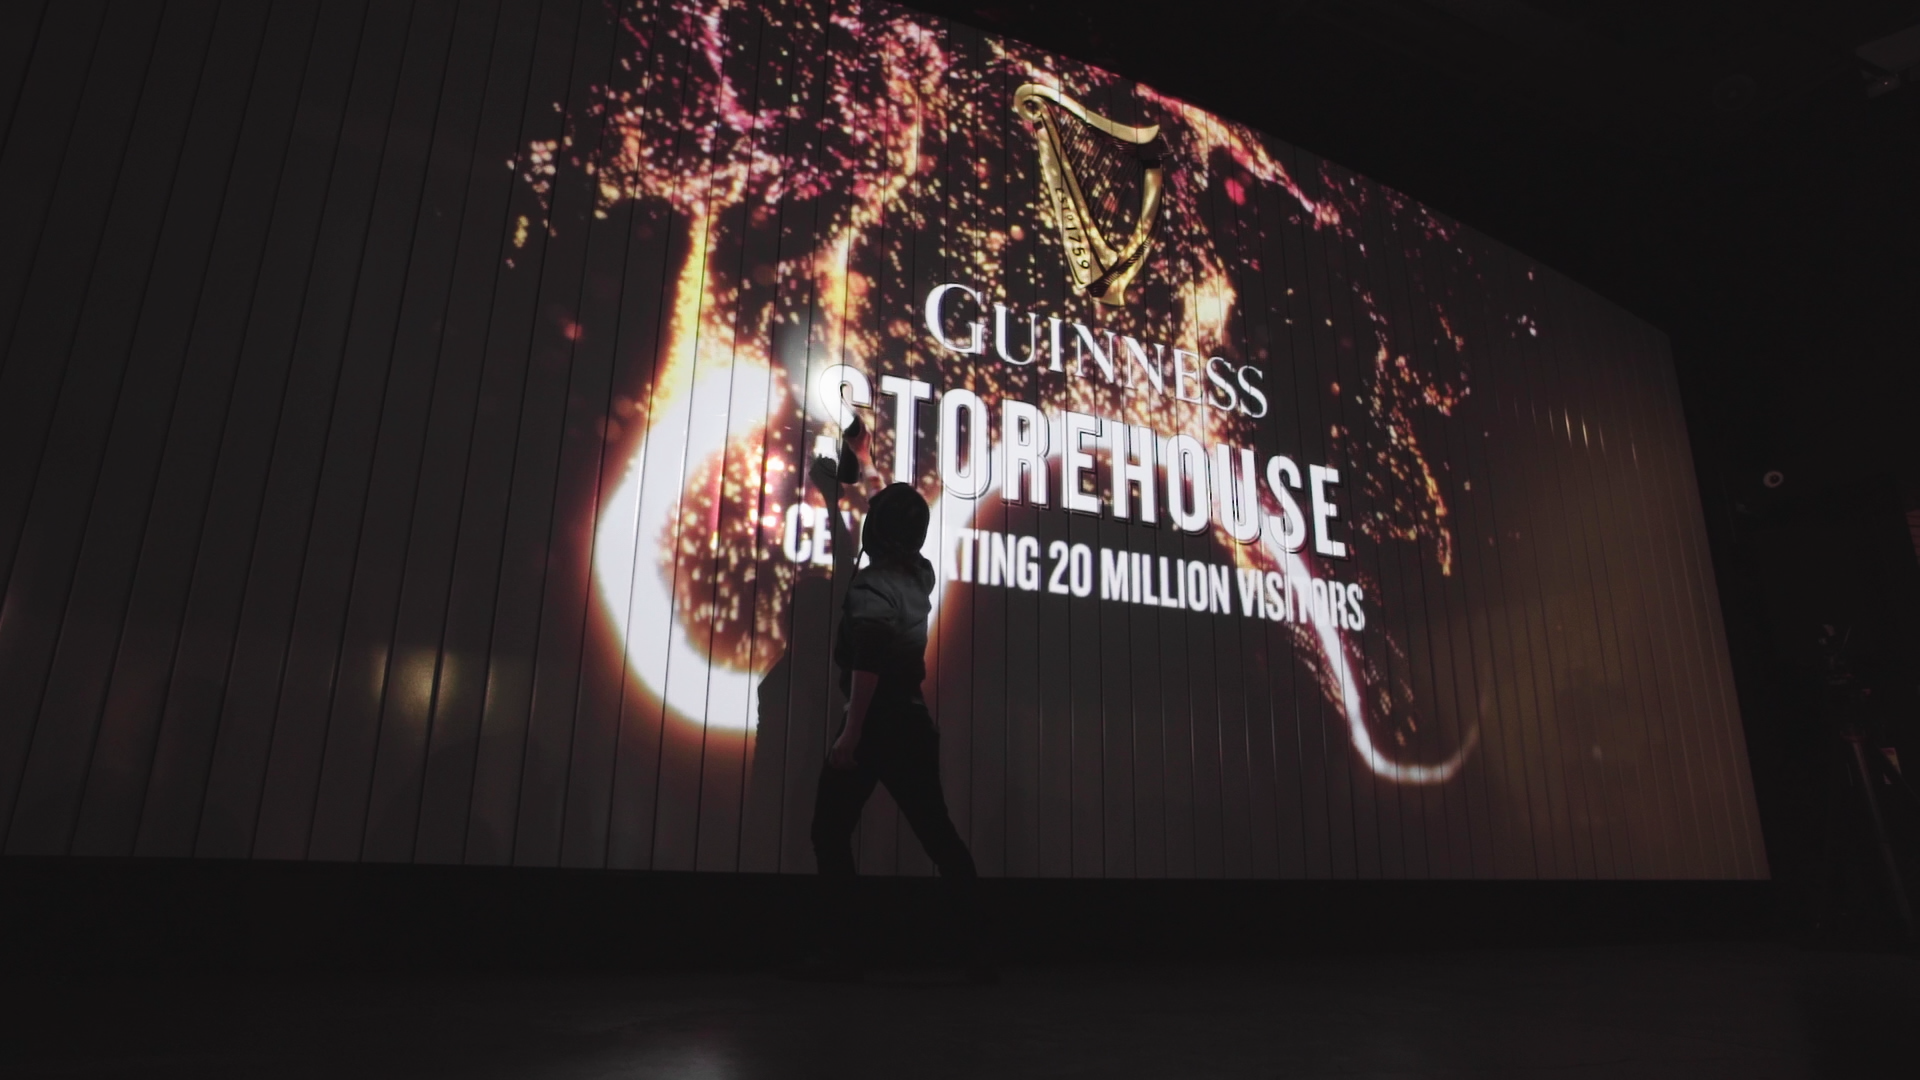 Guinness After Dark Interactive spray paint wall